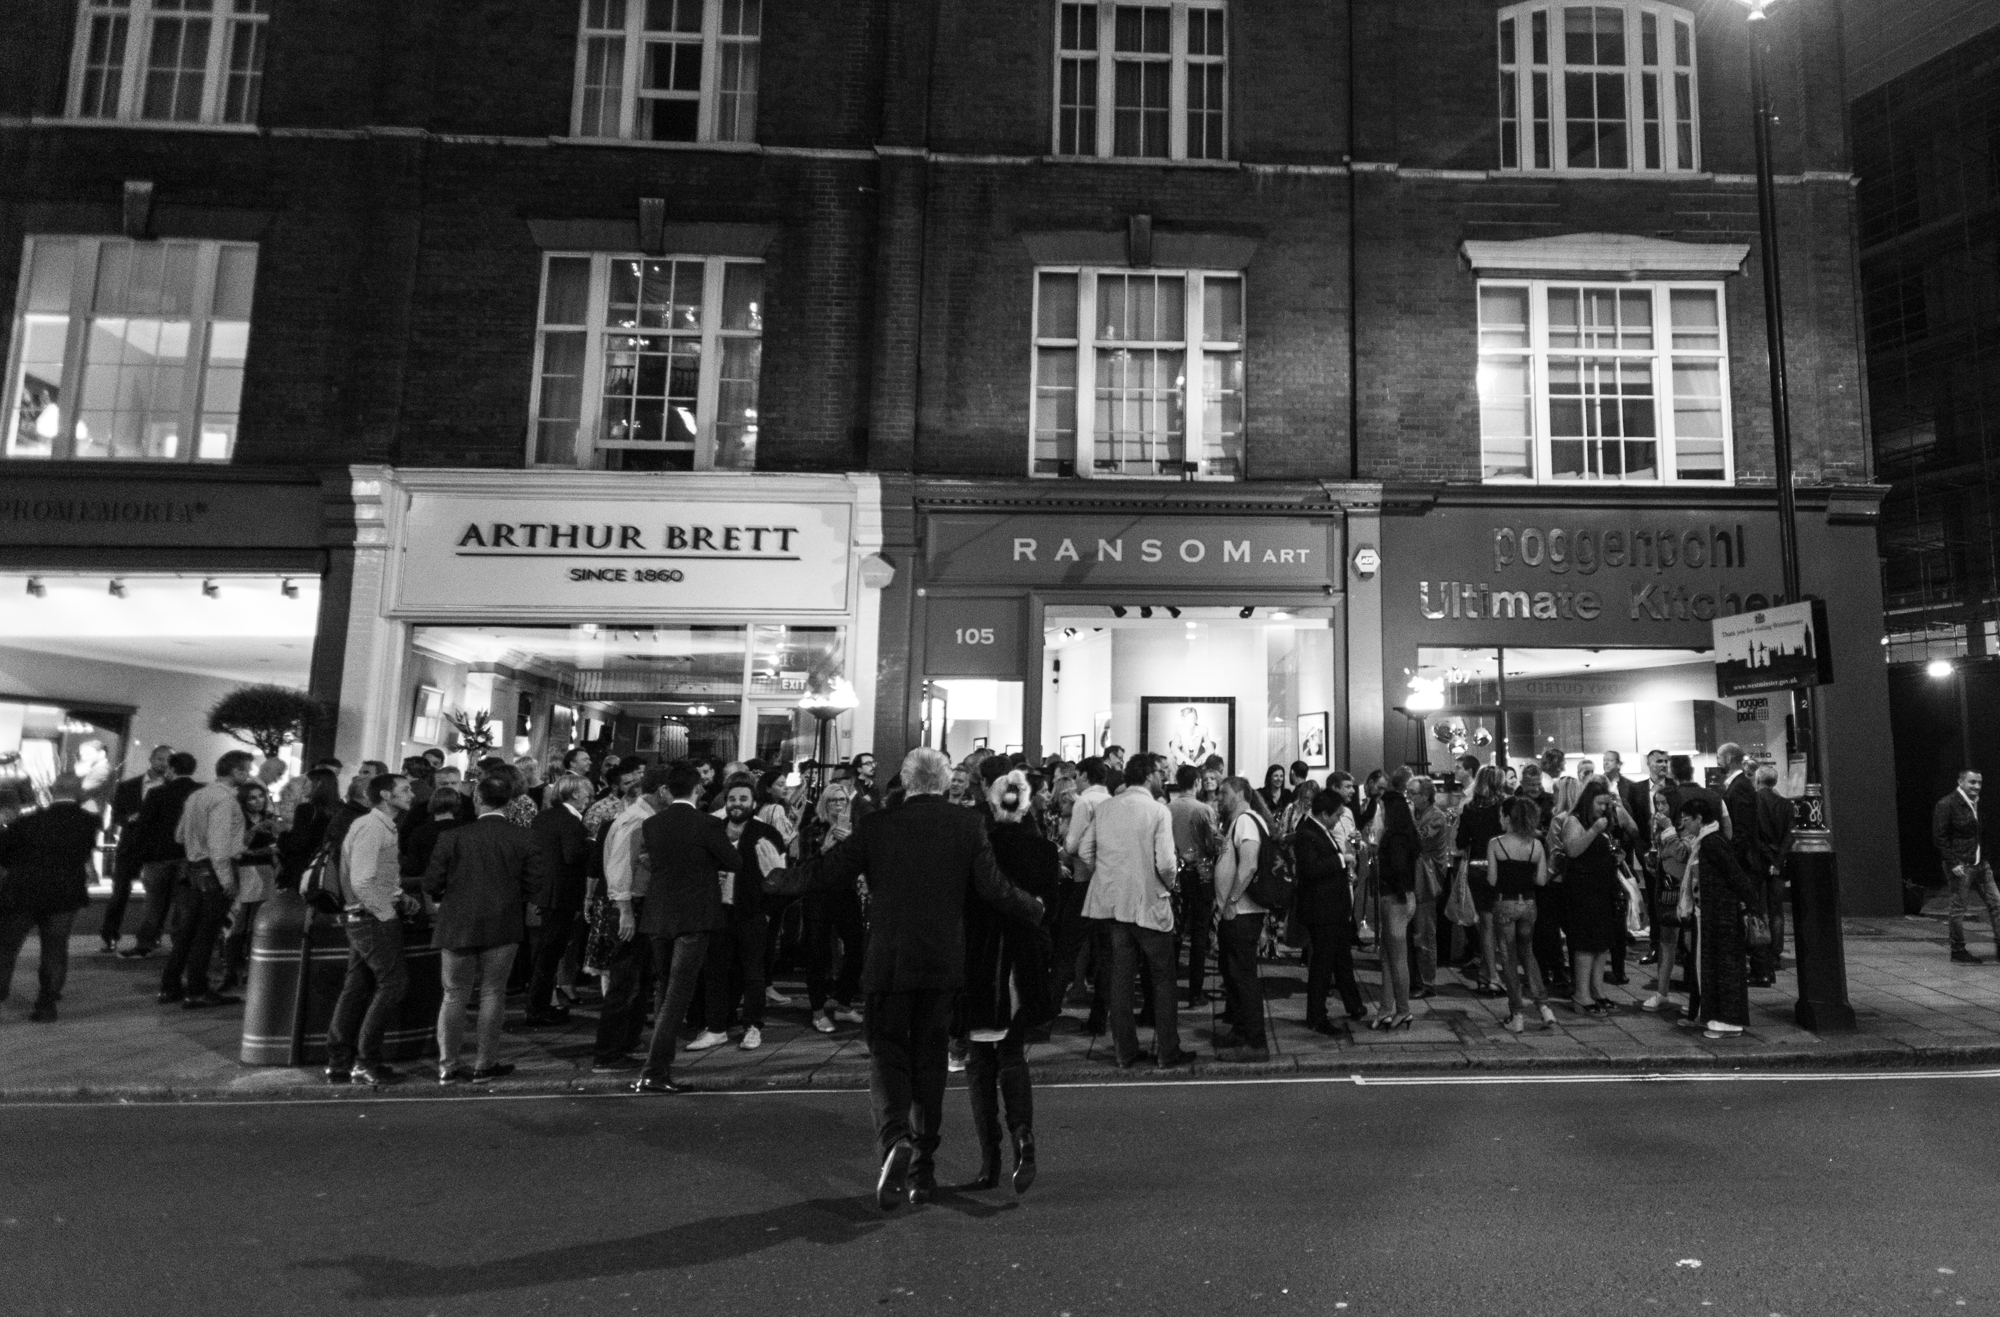 Bowie-by-O'Neill-Exhibition-David-Bowie-party-outside-Ransom-Gallery.jpg